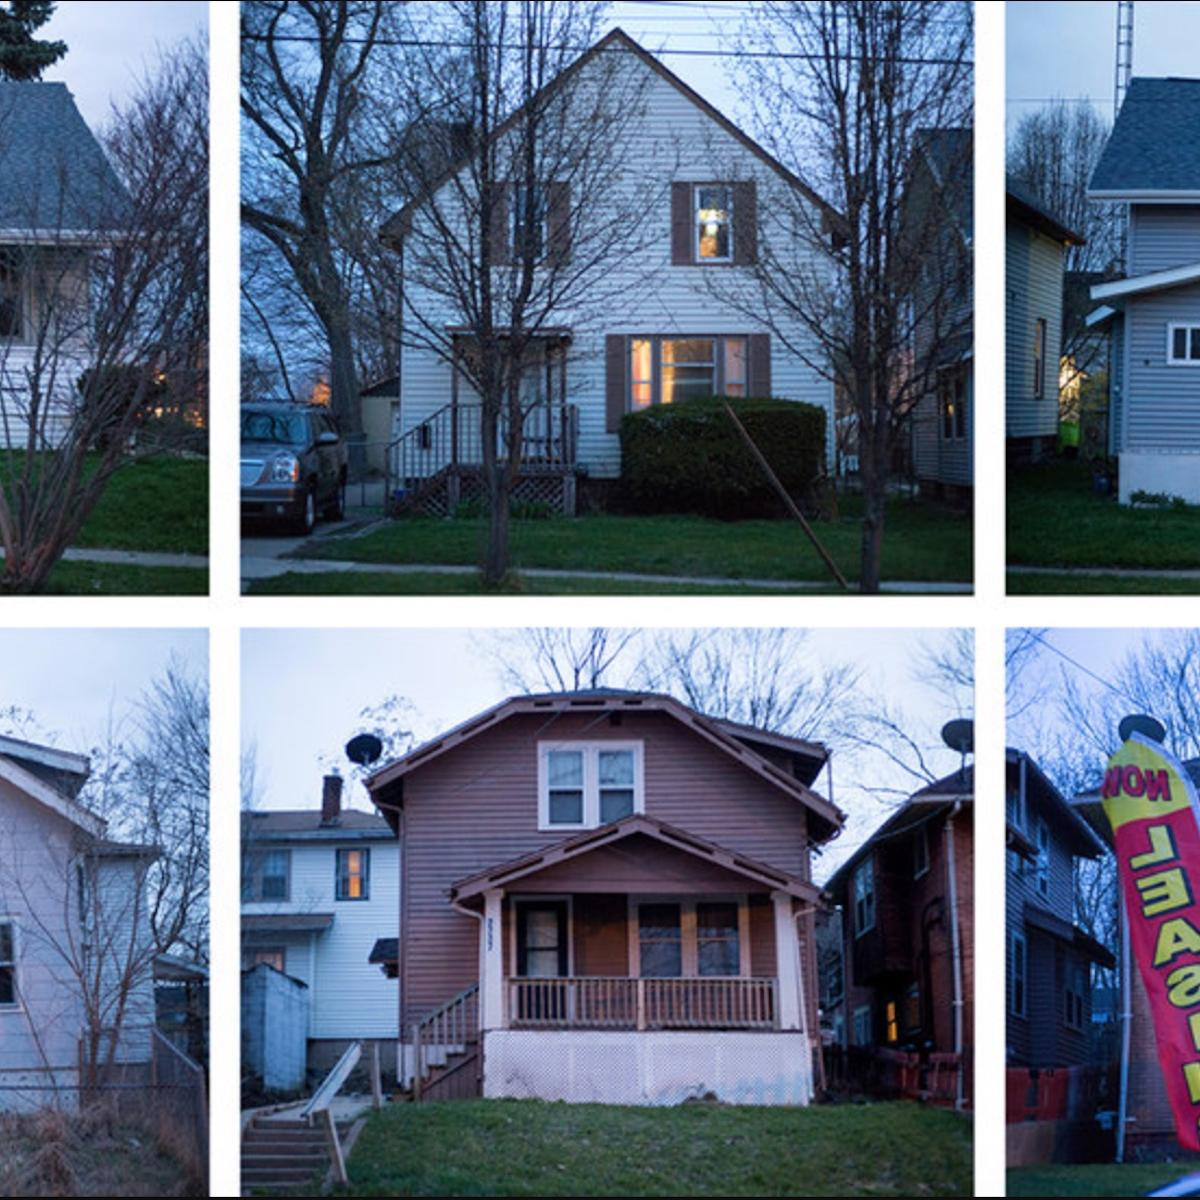 Photo of blighted homes in Flint, Michigan